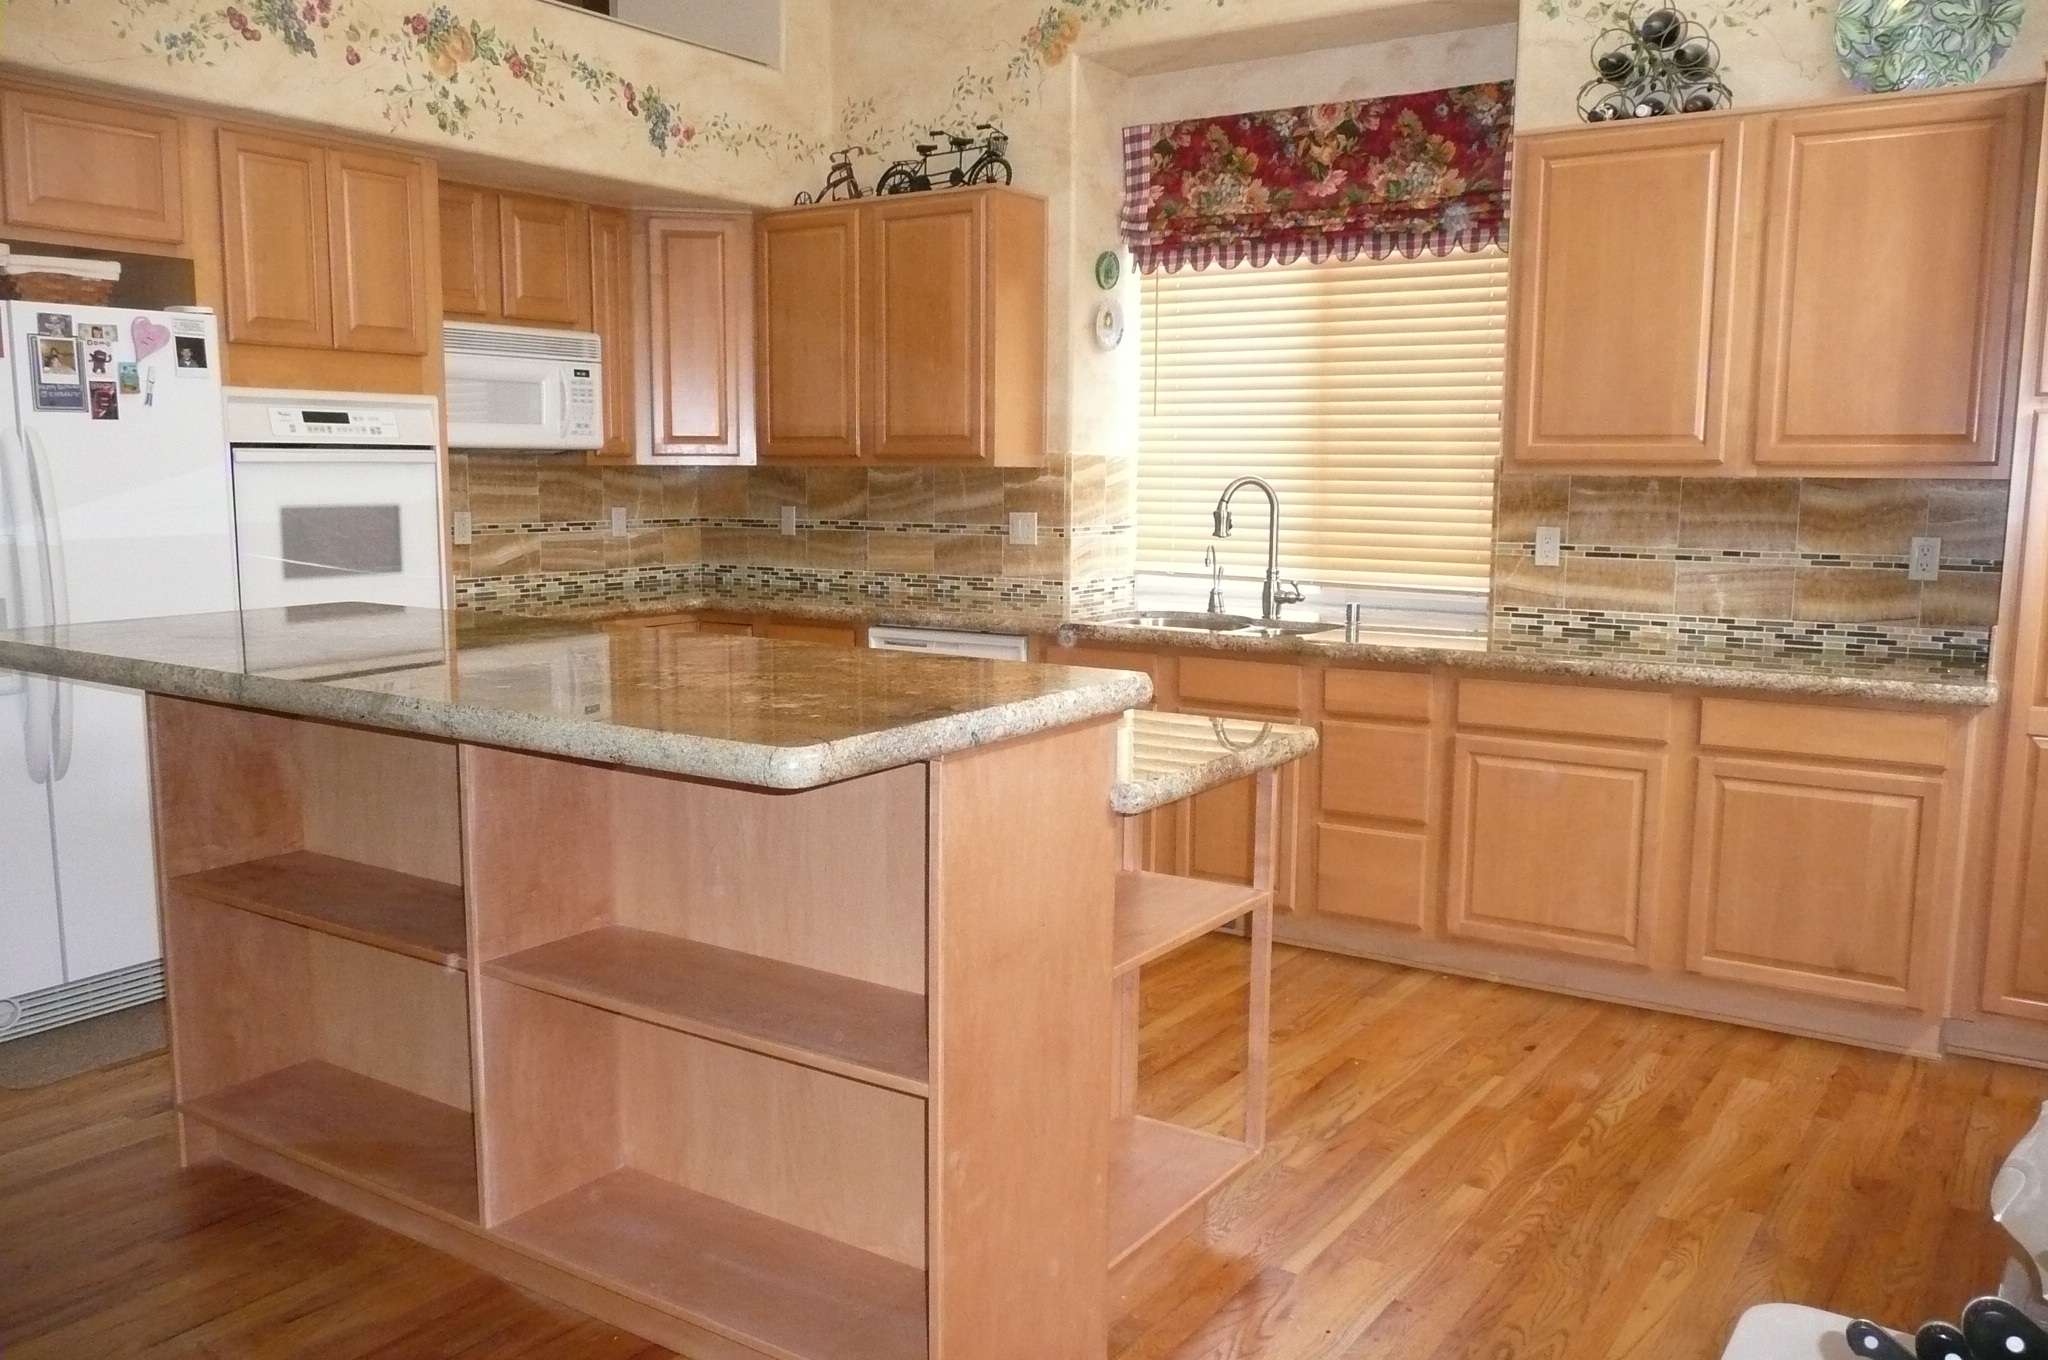 7 things to consider before refinishing your kitchen cabinets refinish kitchen cabinets 7 Things to Consider Before Refinishing Your Kitchen Cabinets